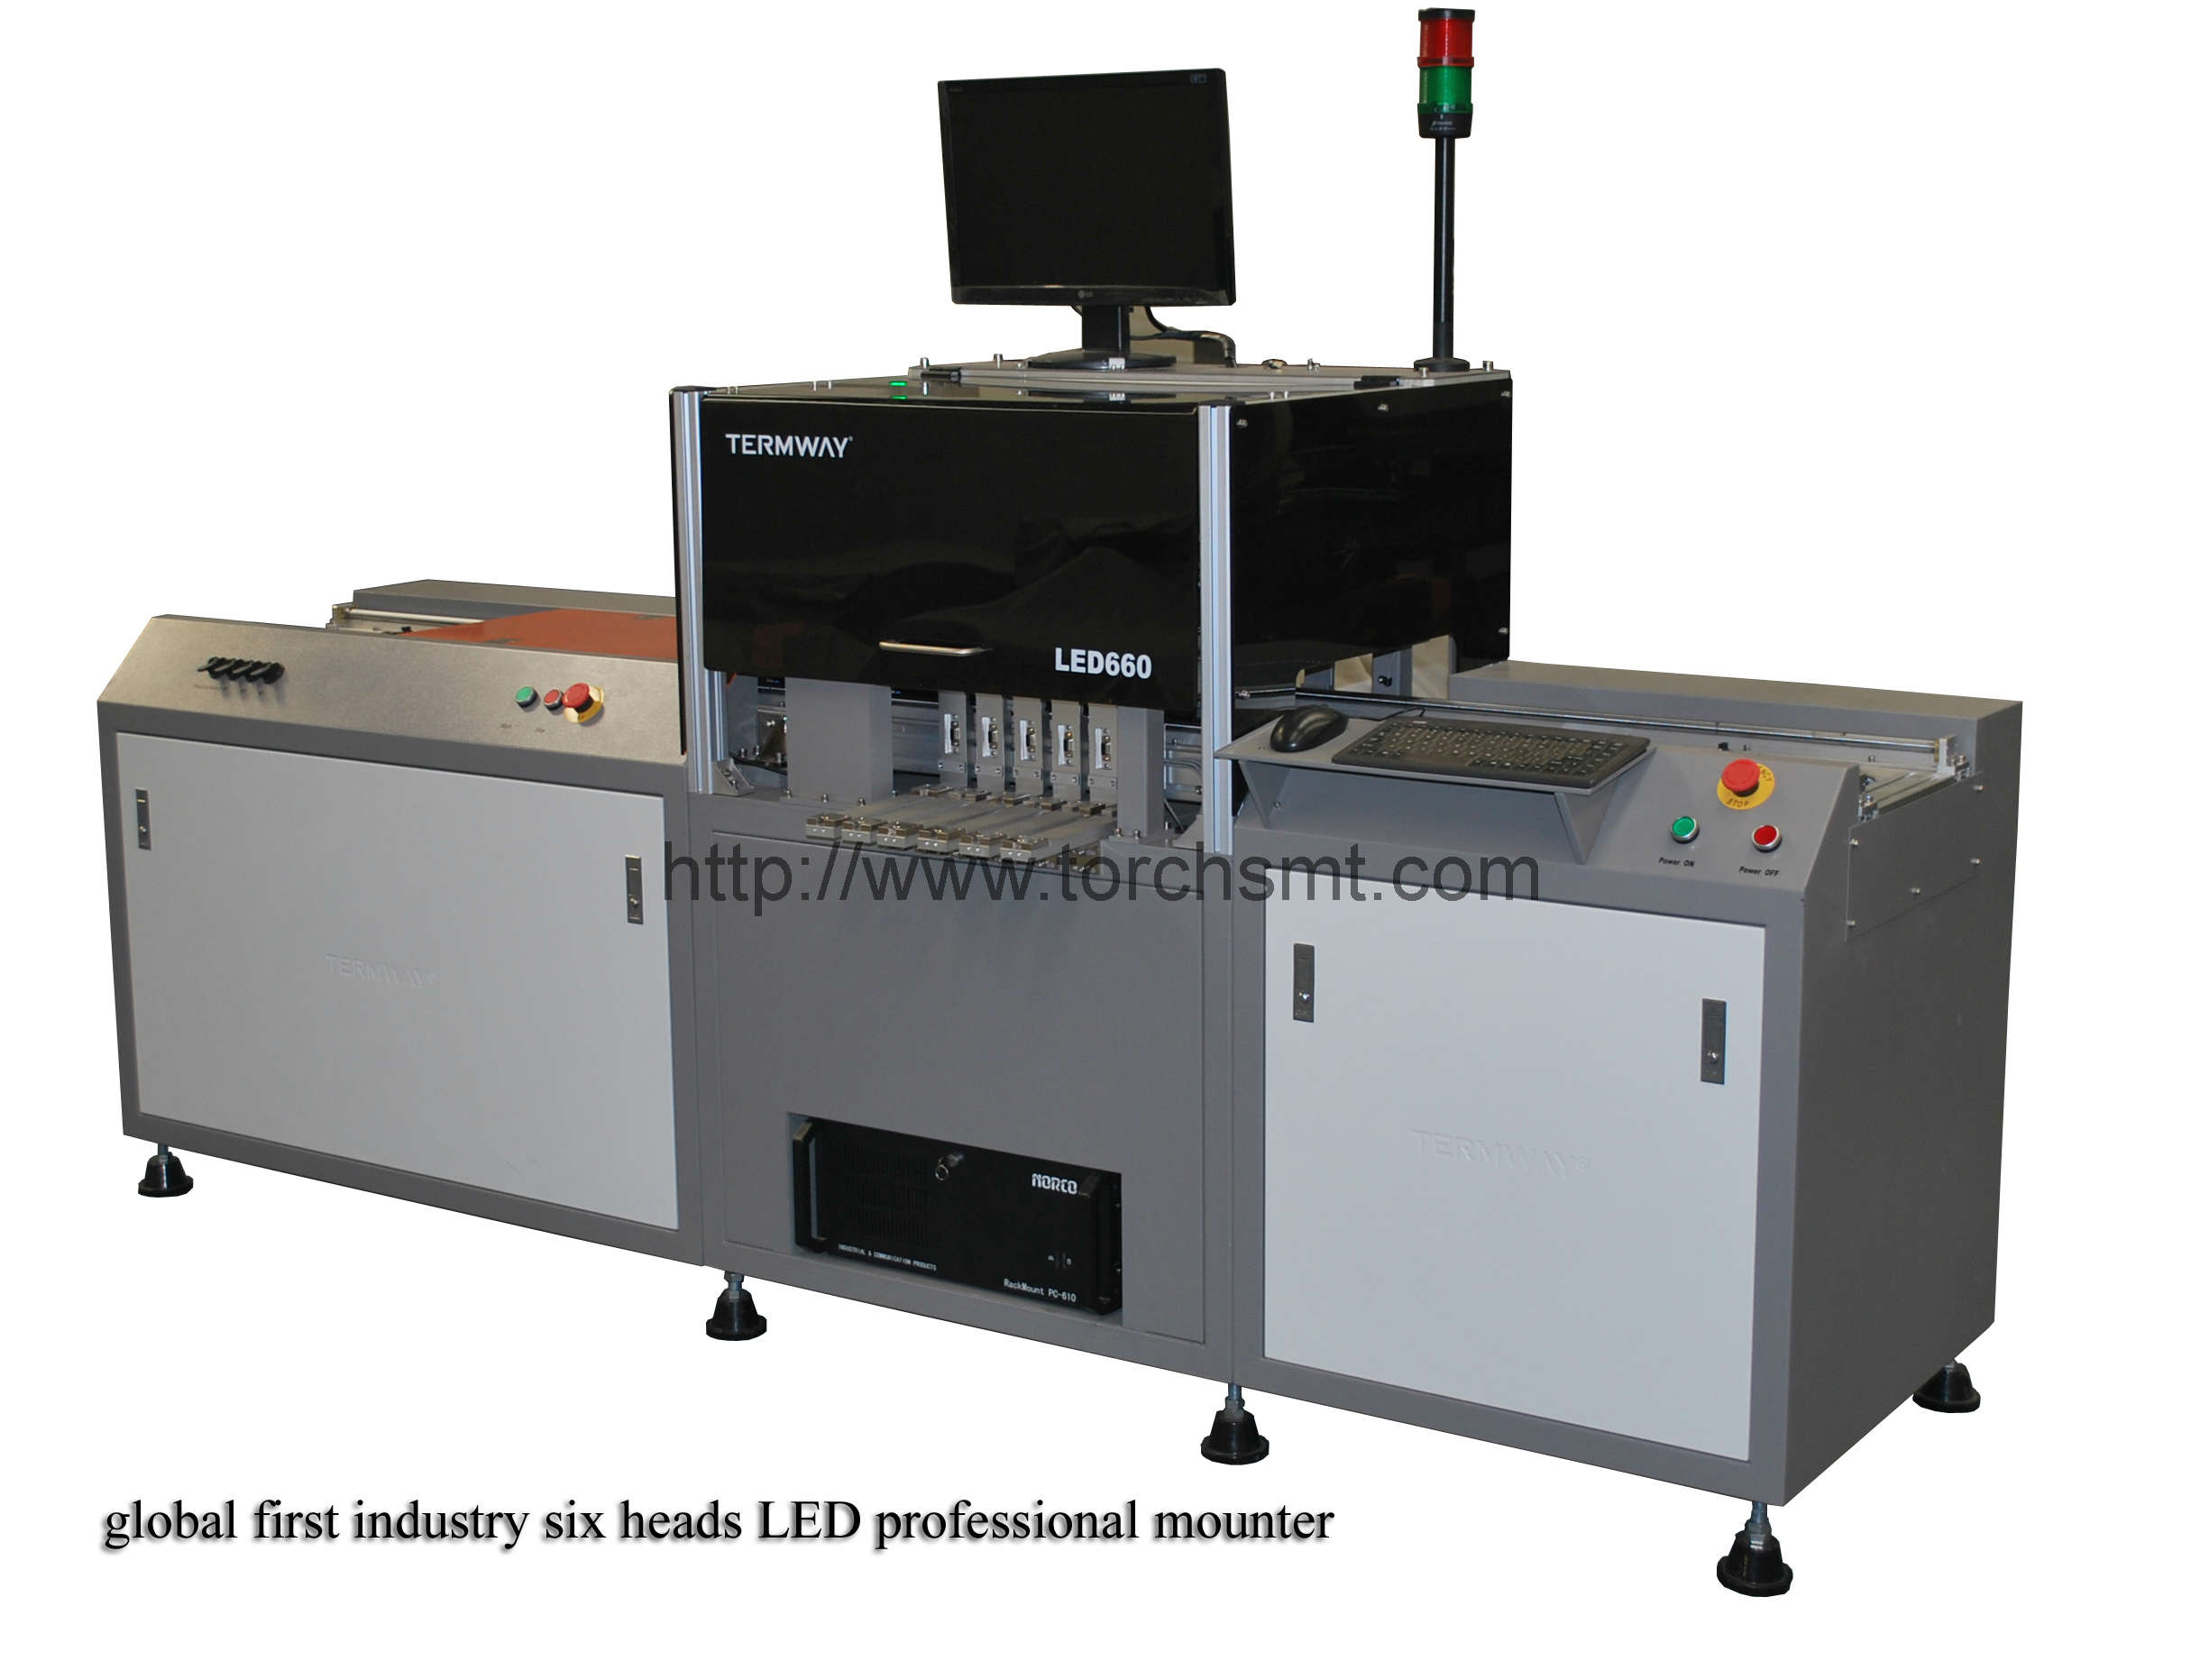 LED-automatisches Chip Mounter LED660